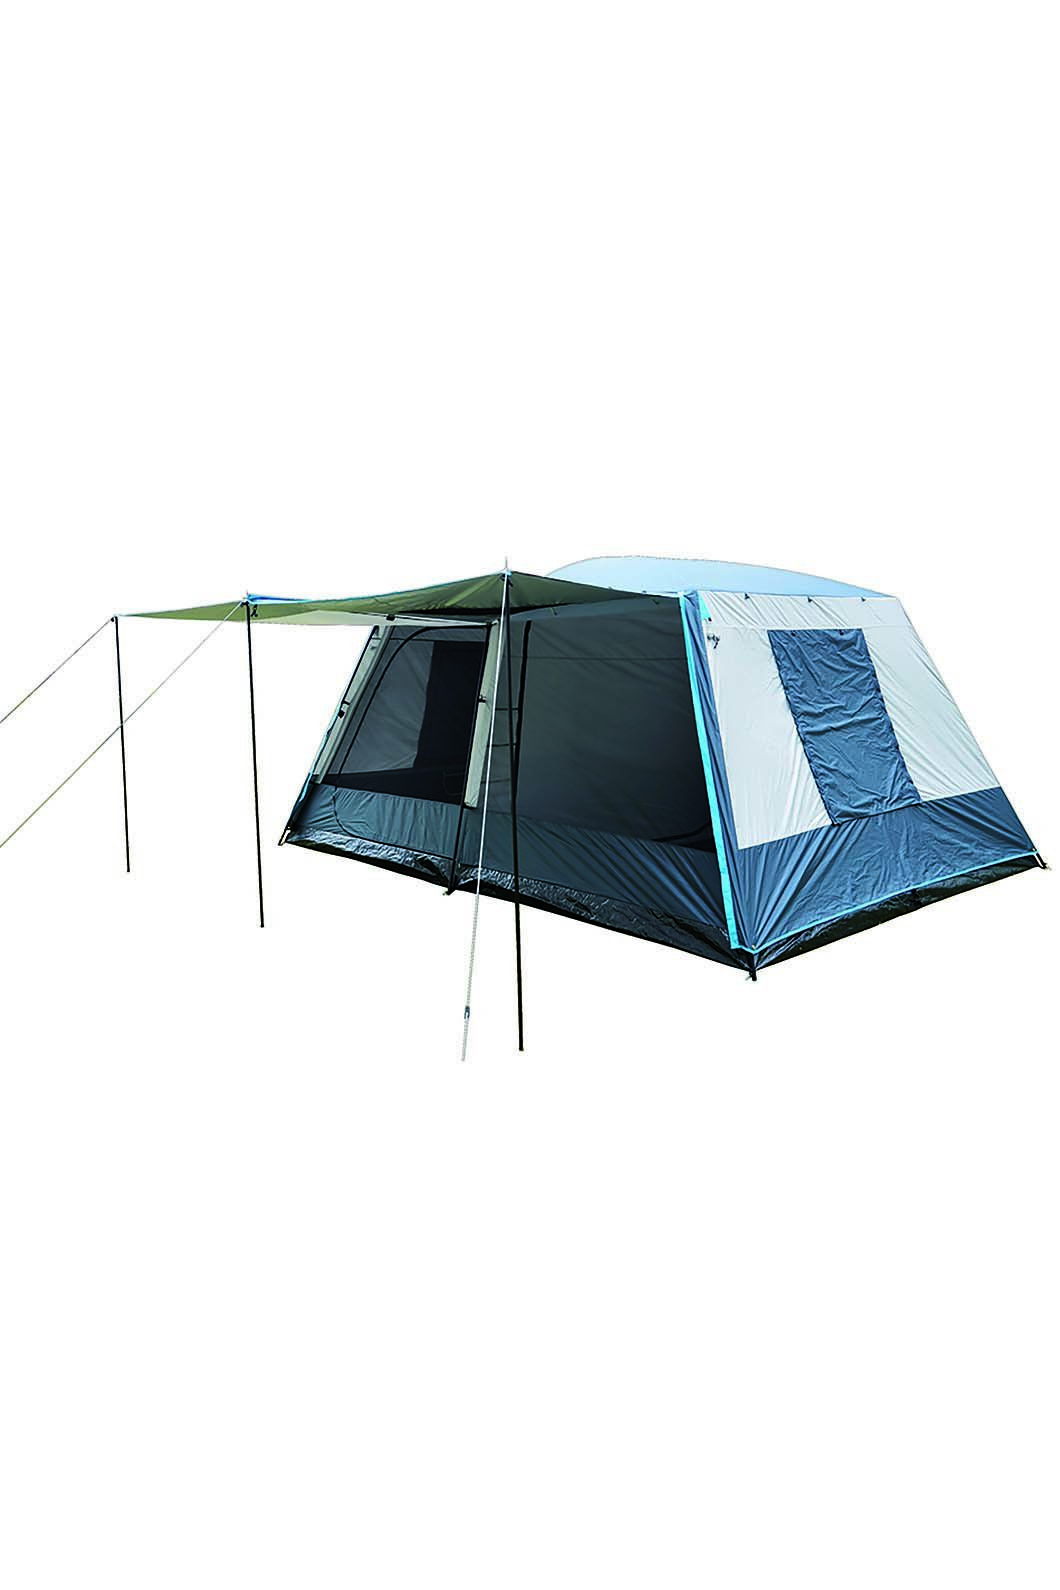 Wanderer Goliath II 10 Person Dome Tent, None, hi-res